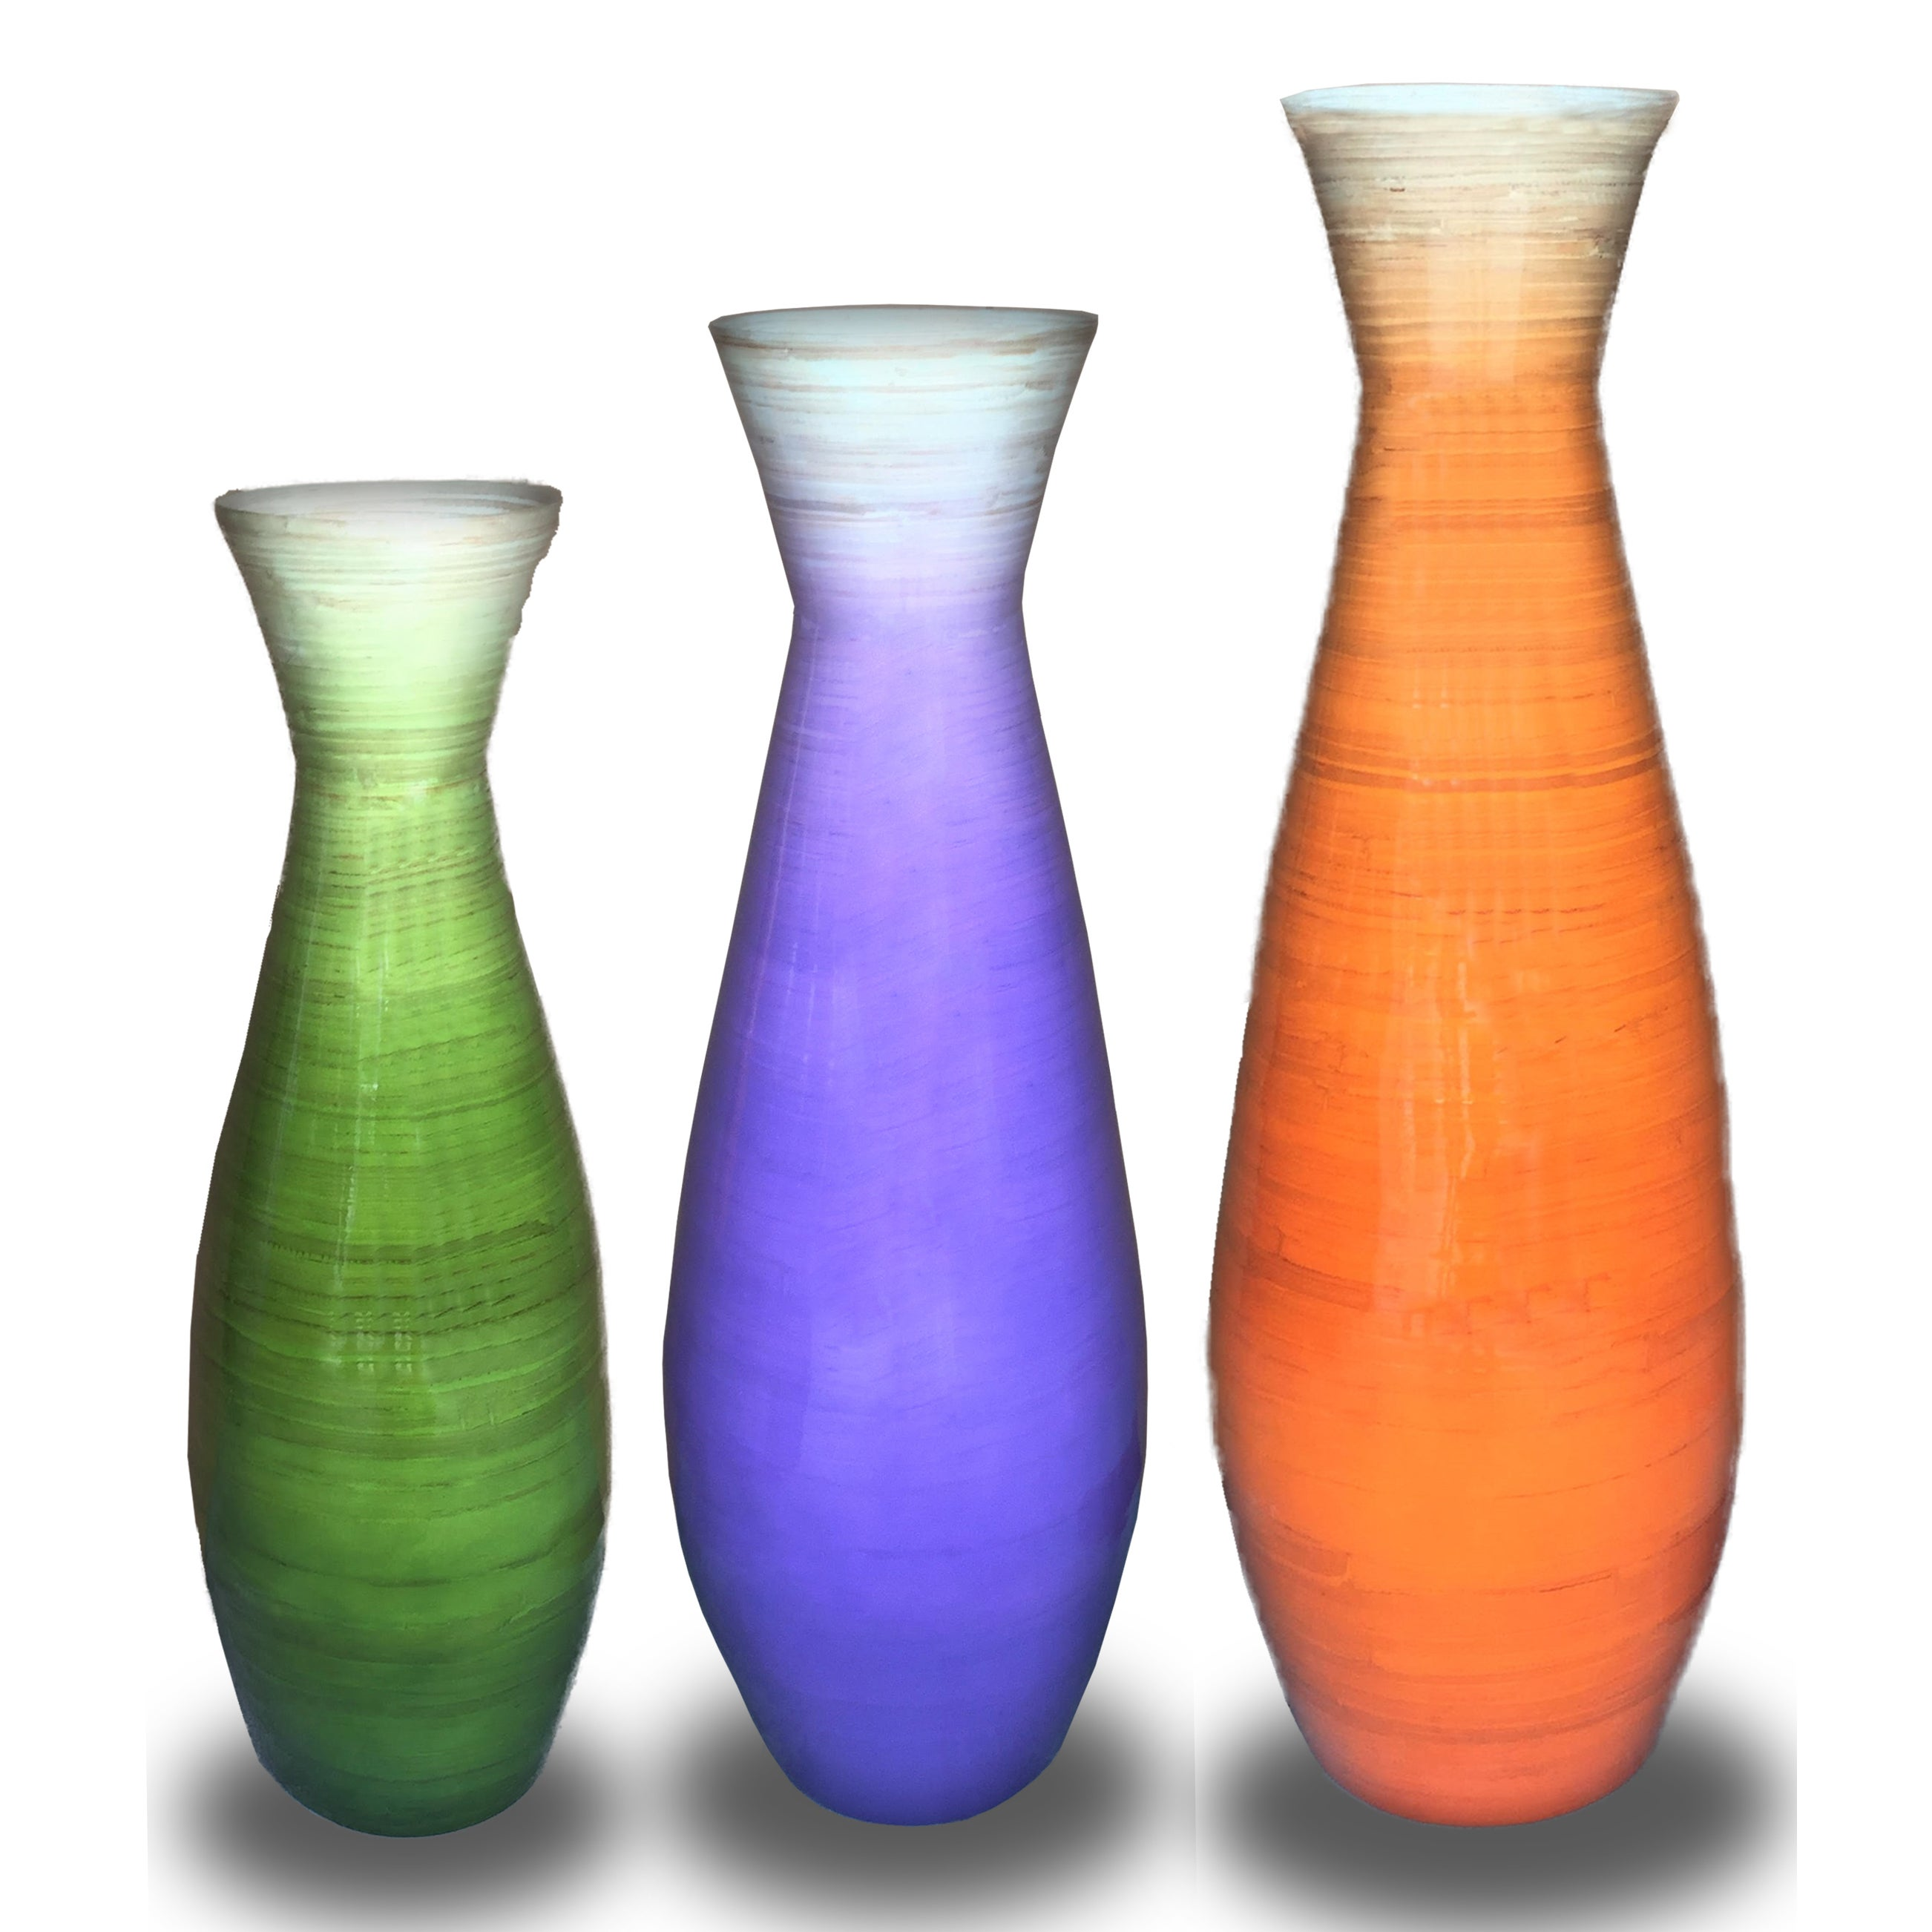 Beautiful Set of 3 Tall Bamboo Floor Vases, in Orange, Purple, and Green  HT43